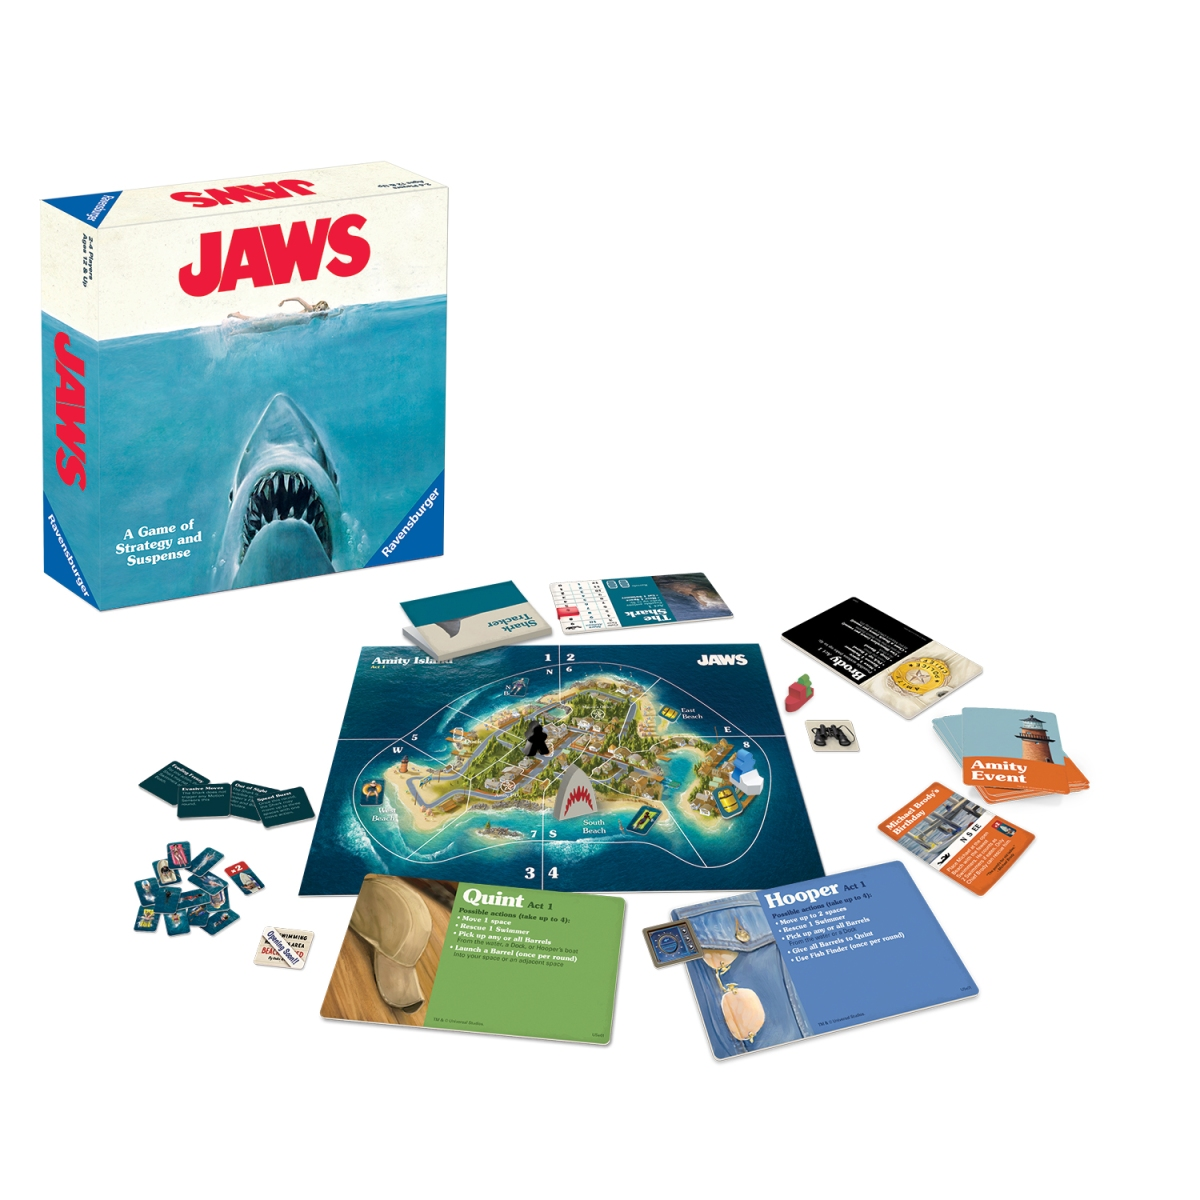 Jaws Board Game Review [Pixelkin]